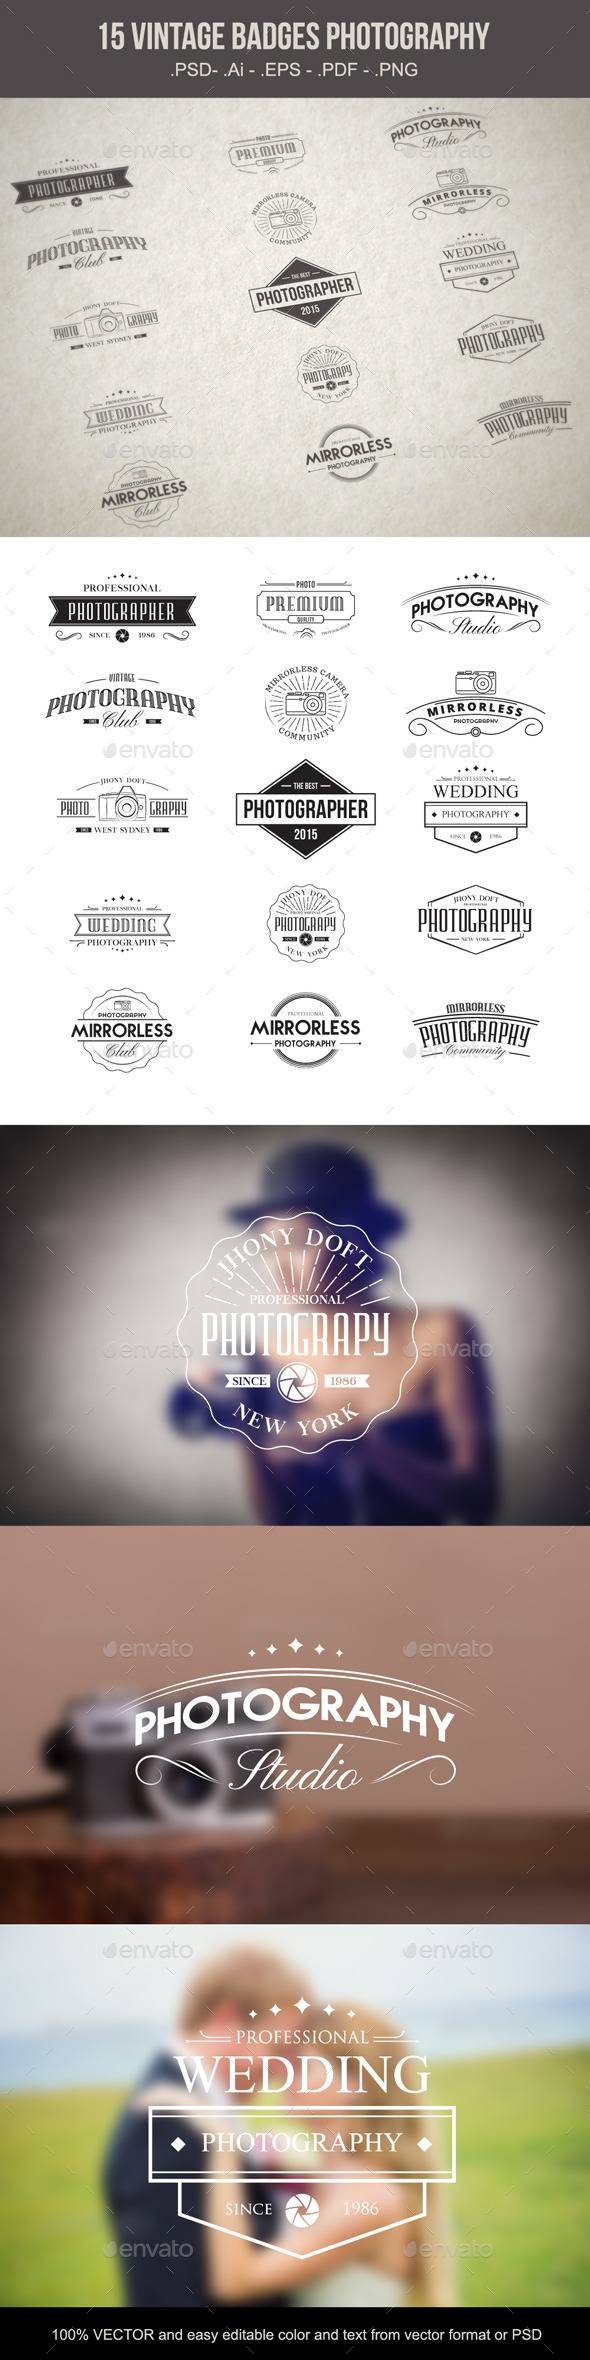 GraphicRiver Vintage Badges Photography 10014440